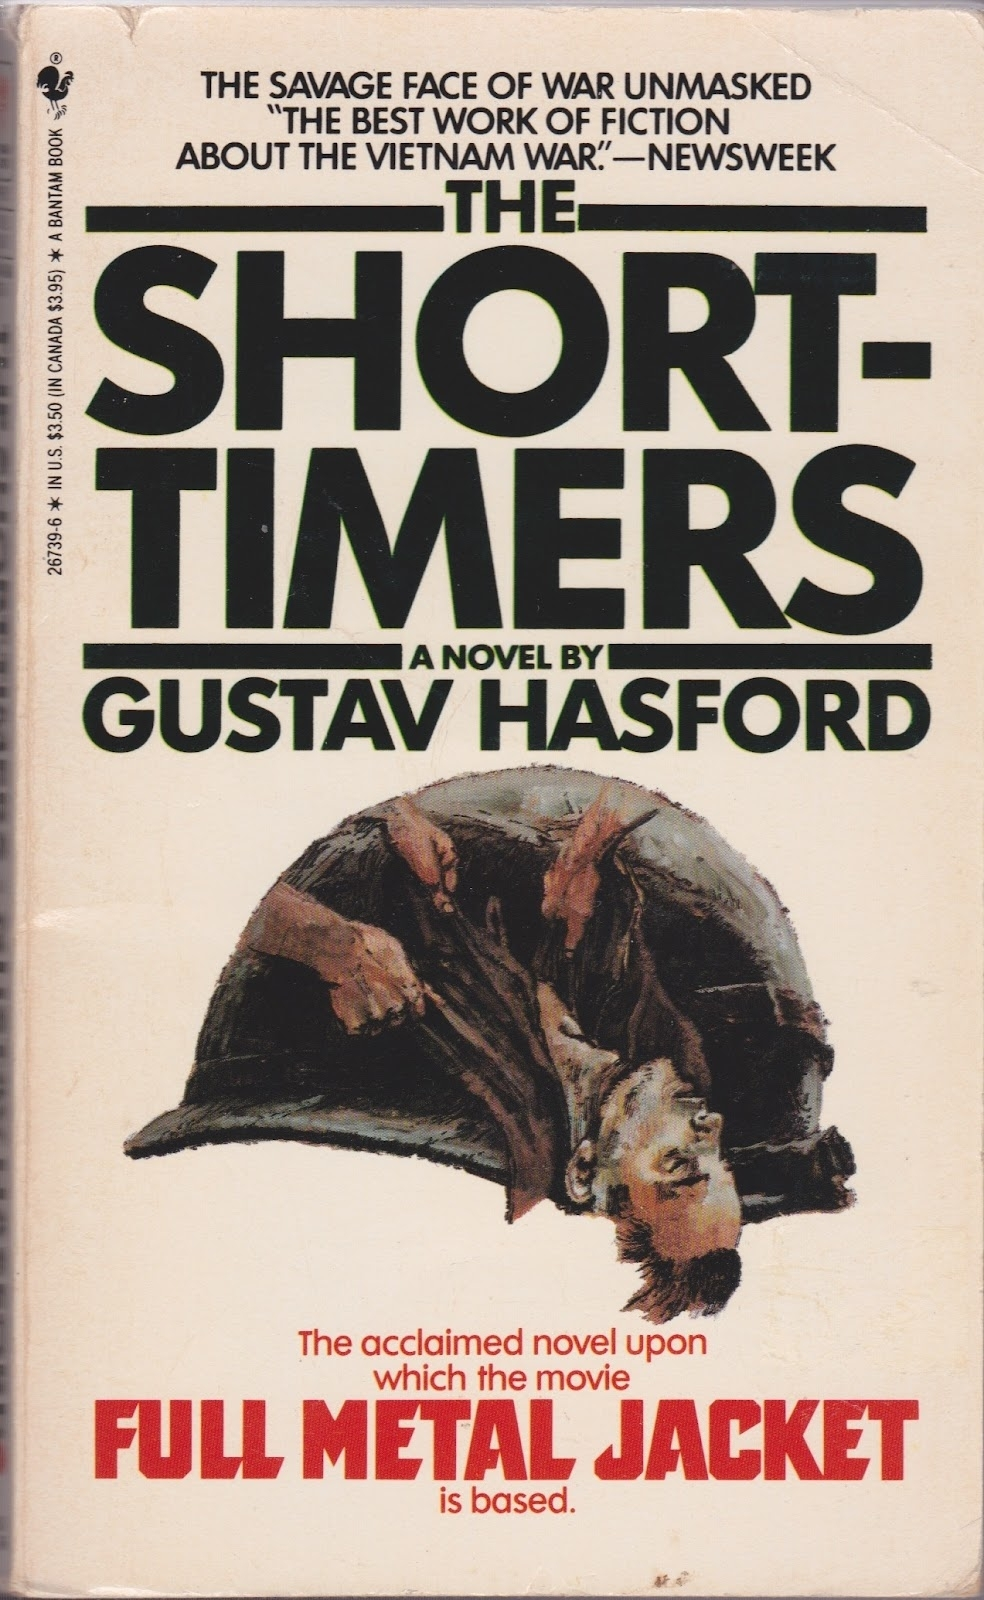 Book Rarities: The Short-Timers By Gustav Hasford